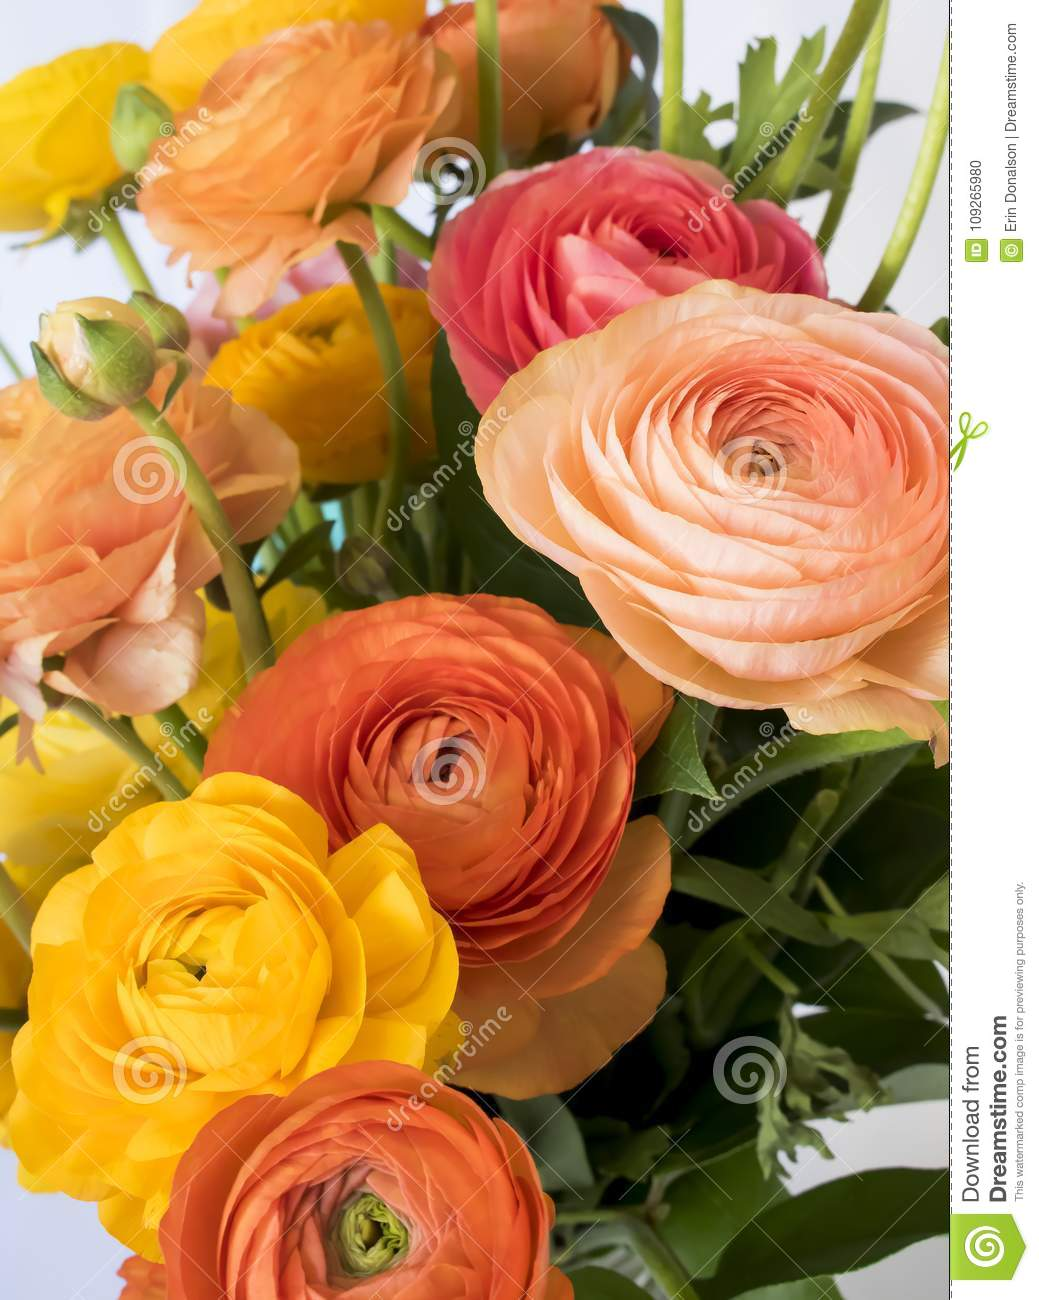 Close Up Bunch Of Bright Orange Yellow And Pink Ranunculus Flowers Stock Photo Image Of Bloom Blossom 109265980